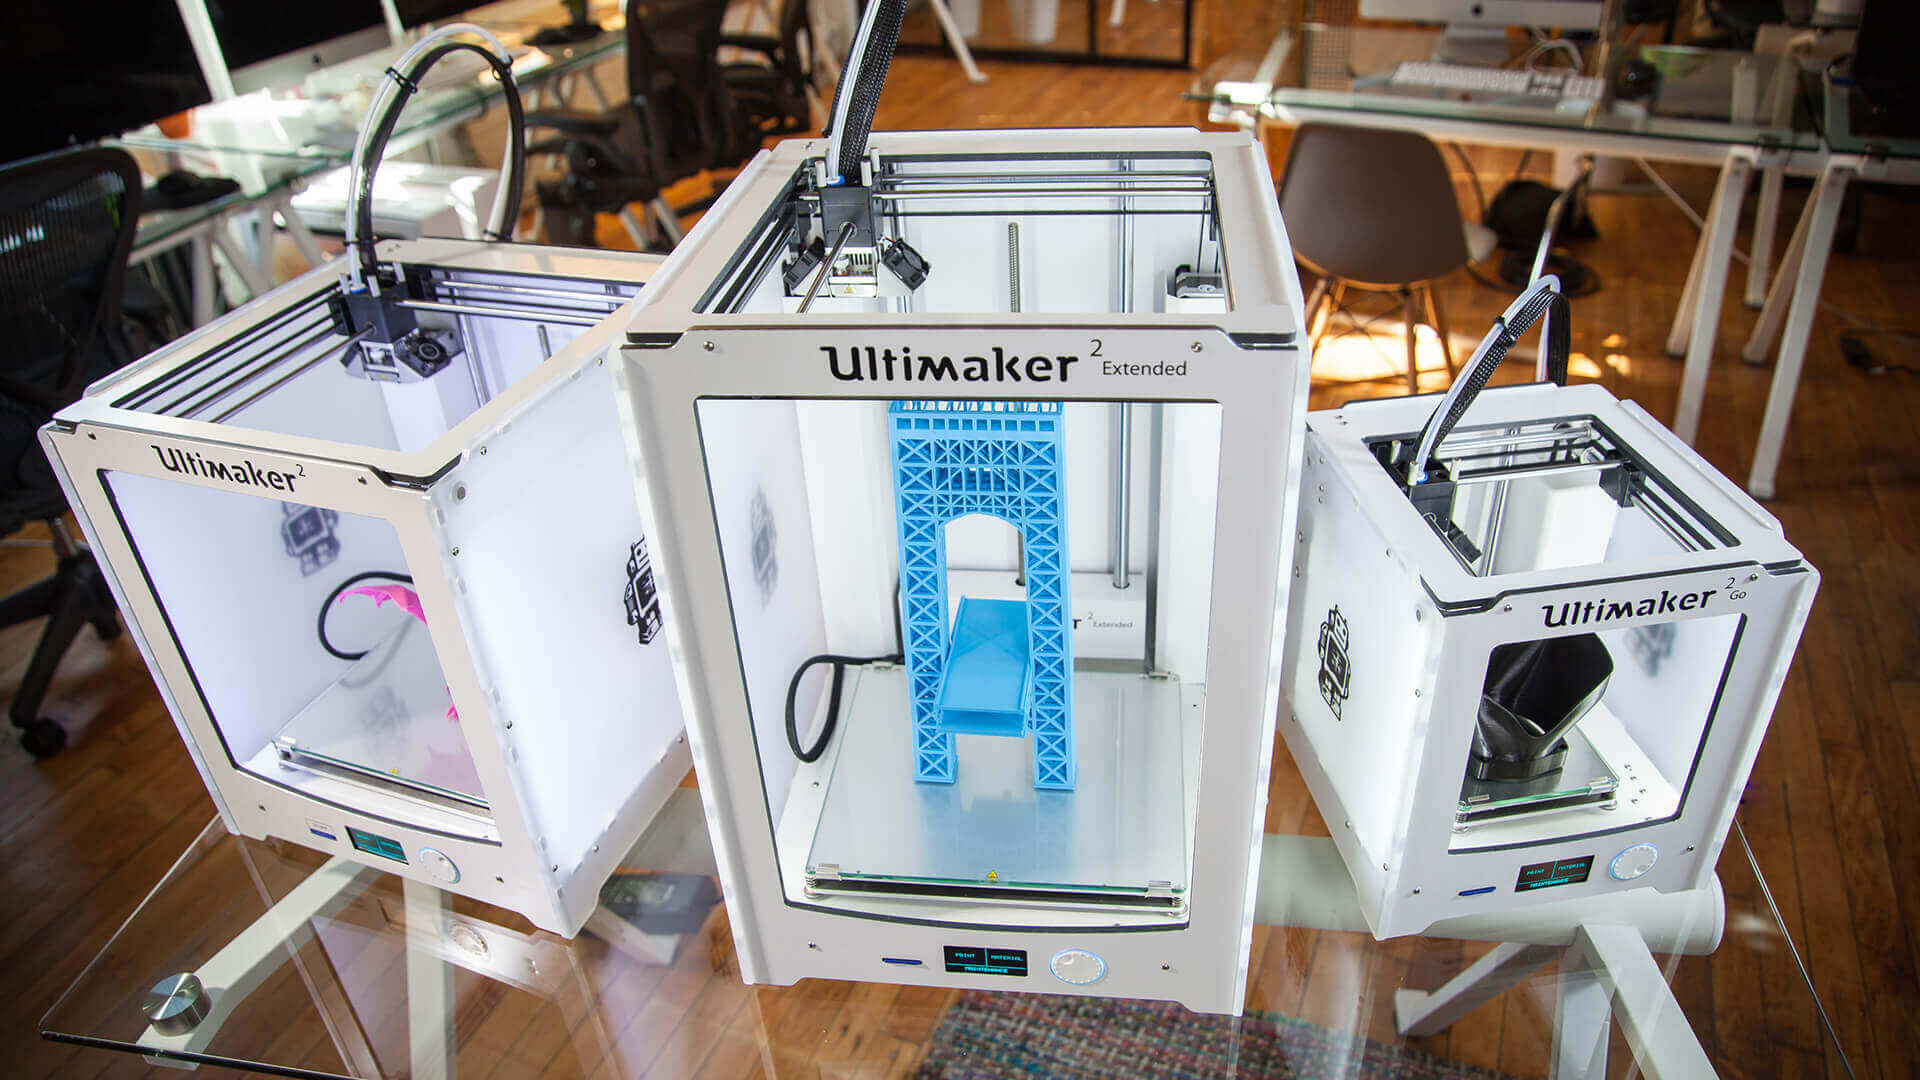 Ultimaker Releases Source Files for Ultimaker 2 Go and Extended | All3DP